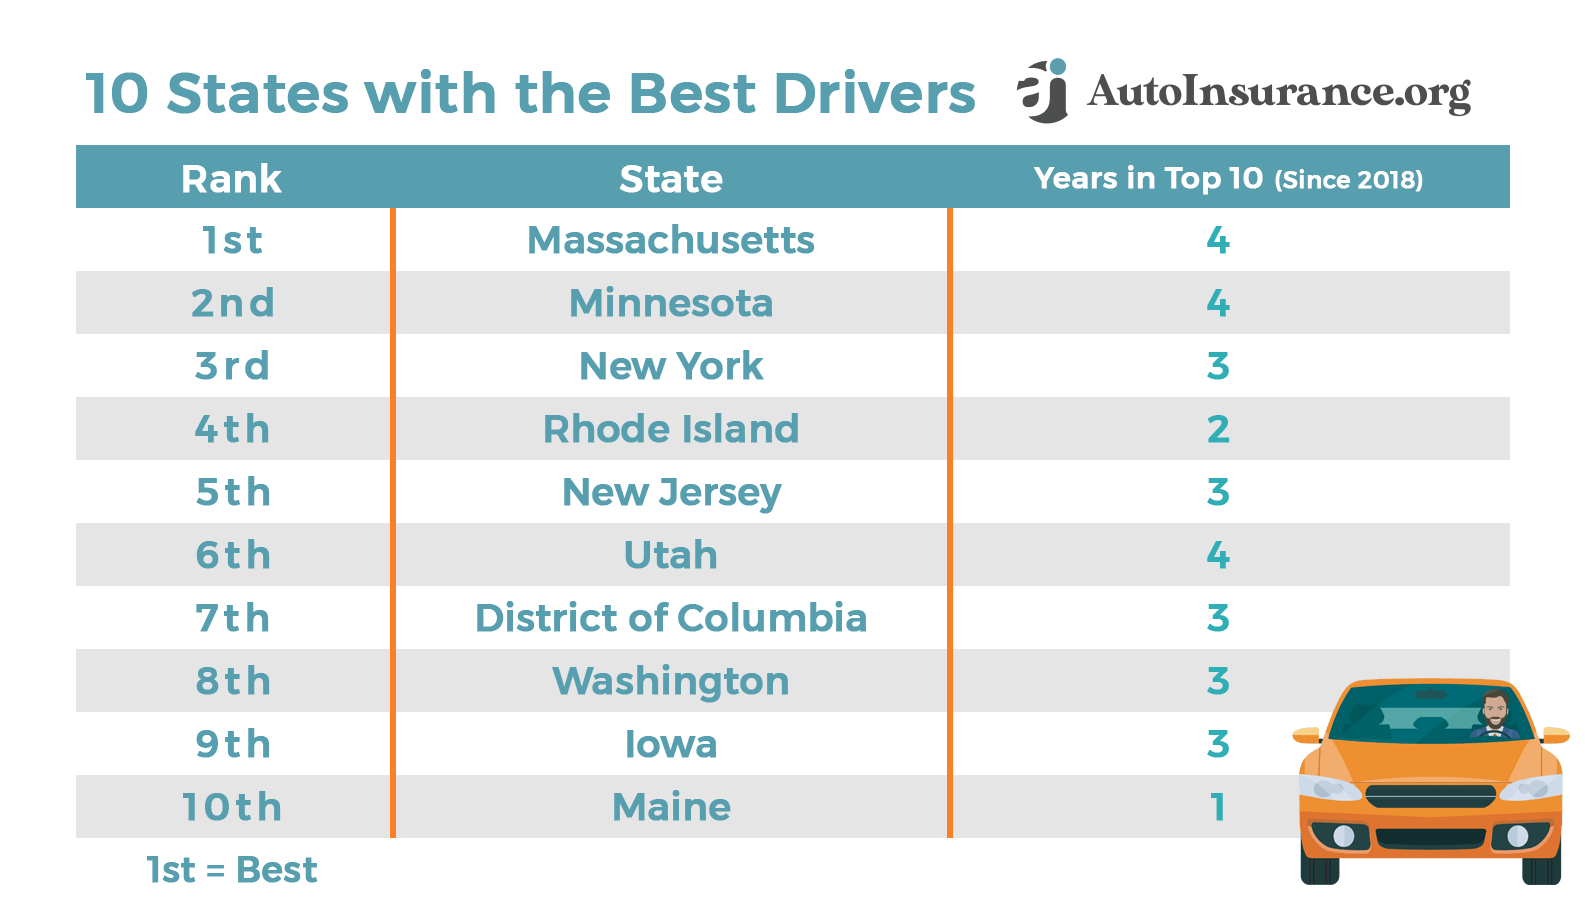 10 States with the Best Drivers